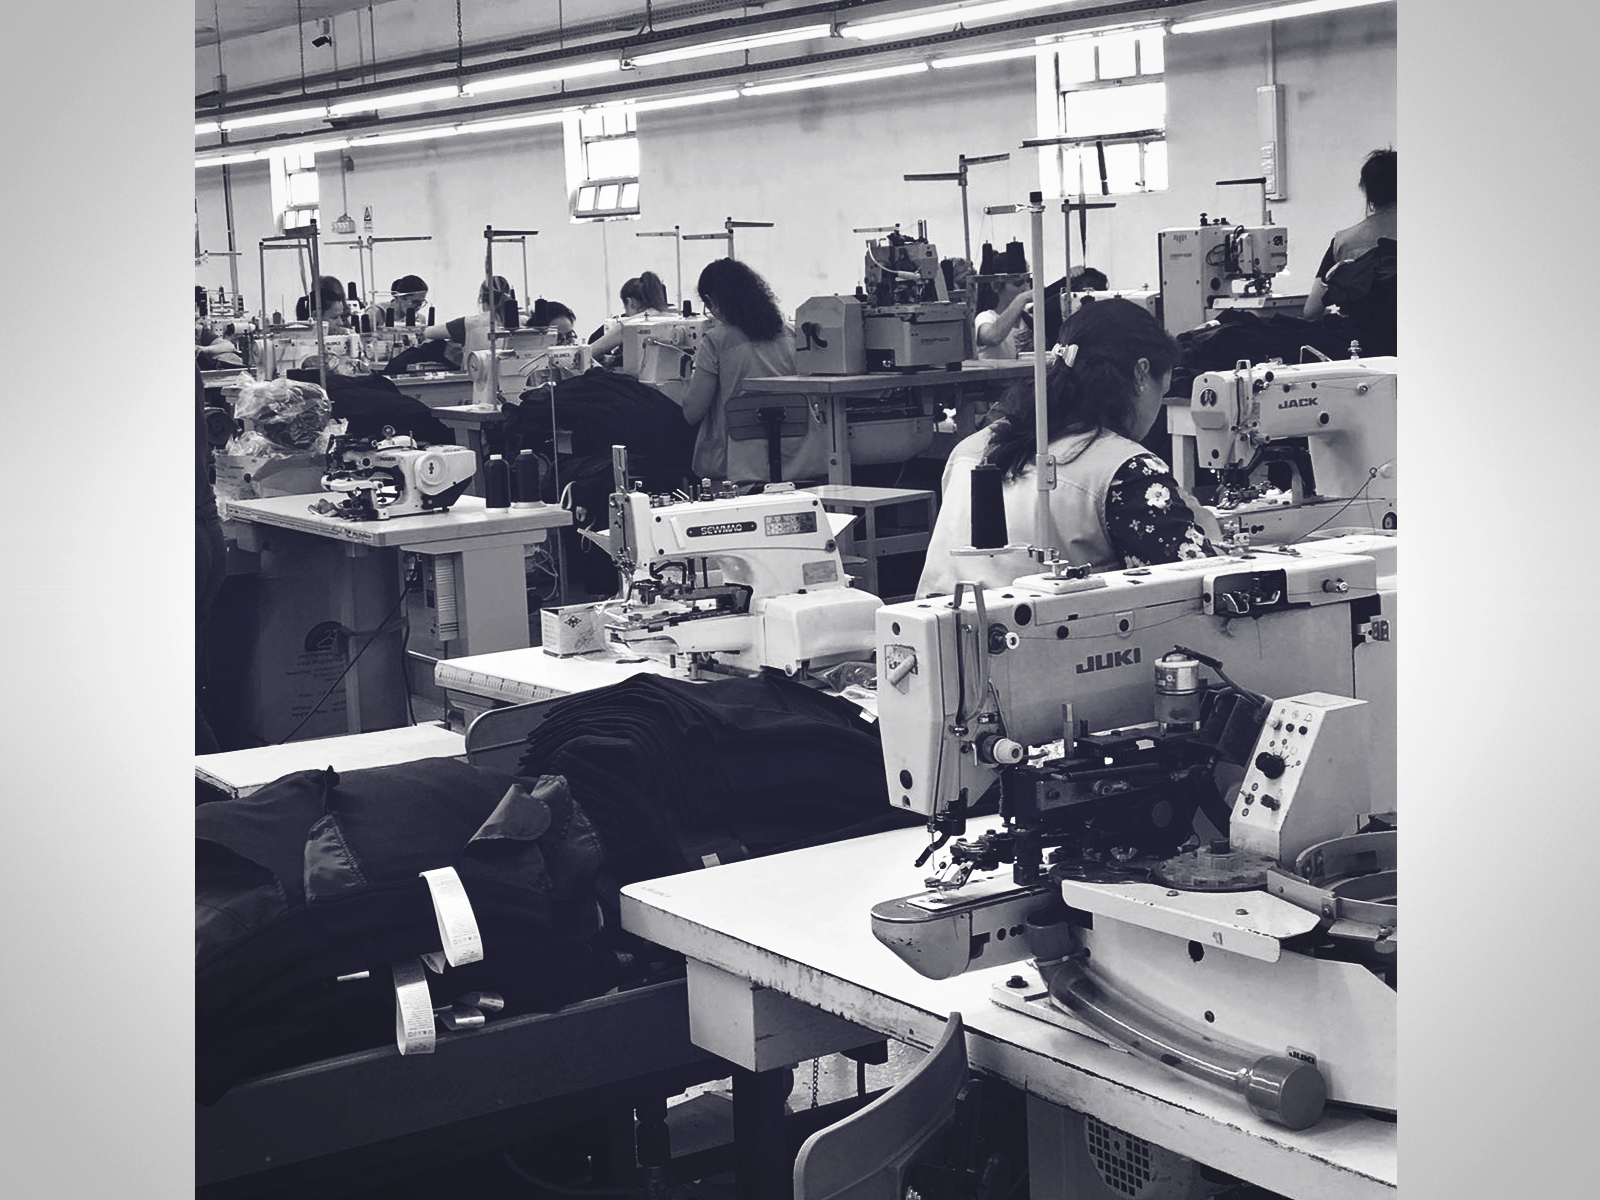 High-quality clothing manufacturers based in Portugal